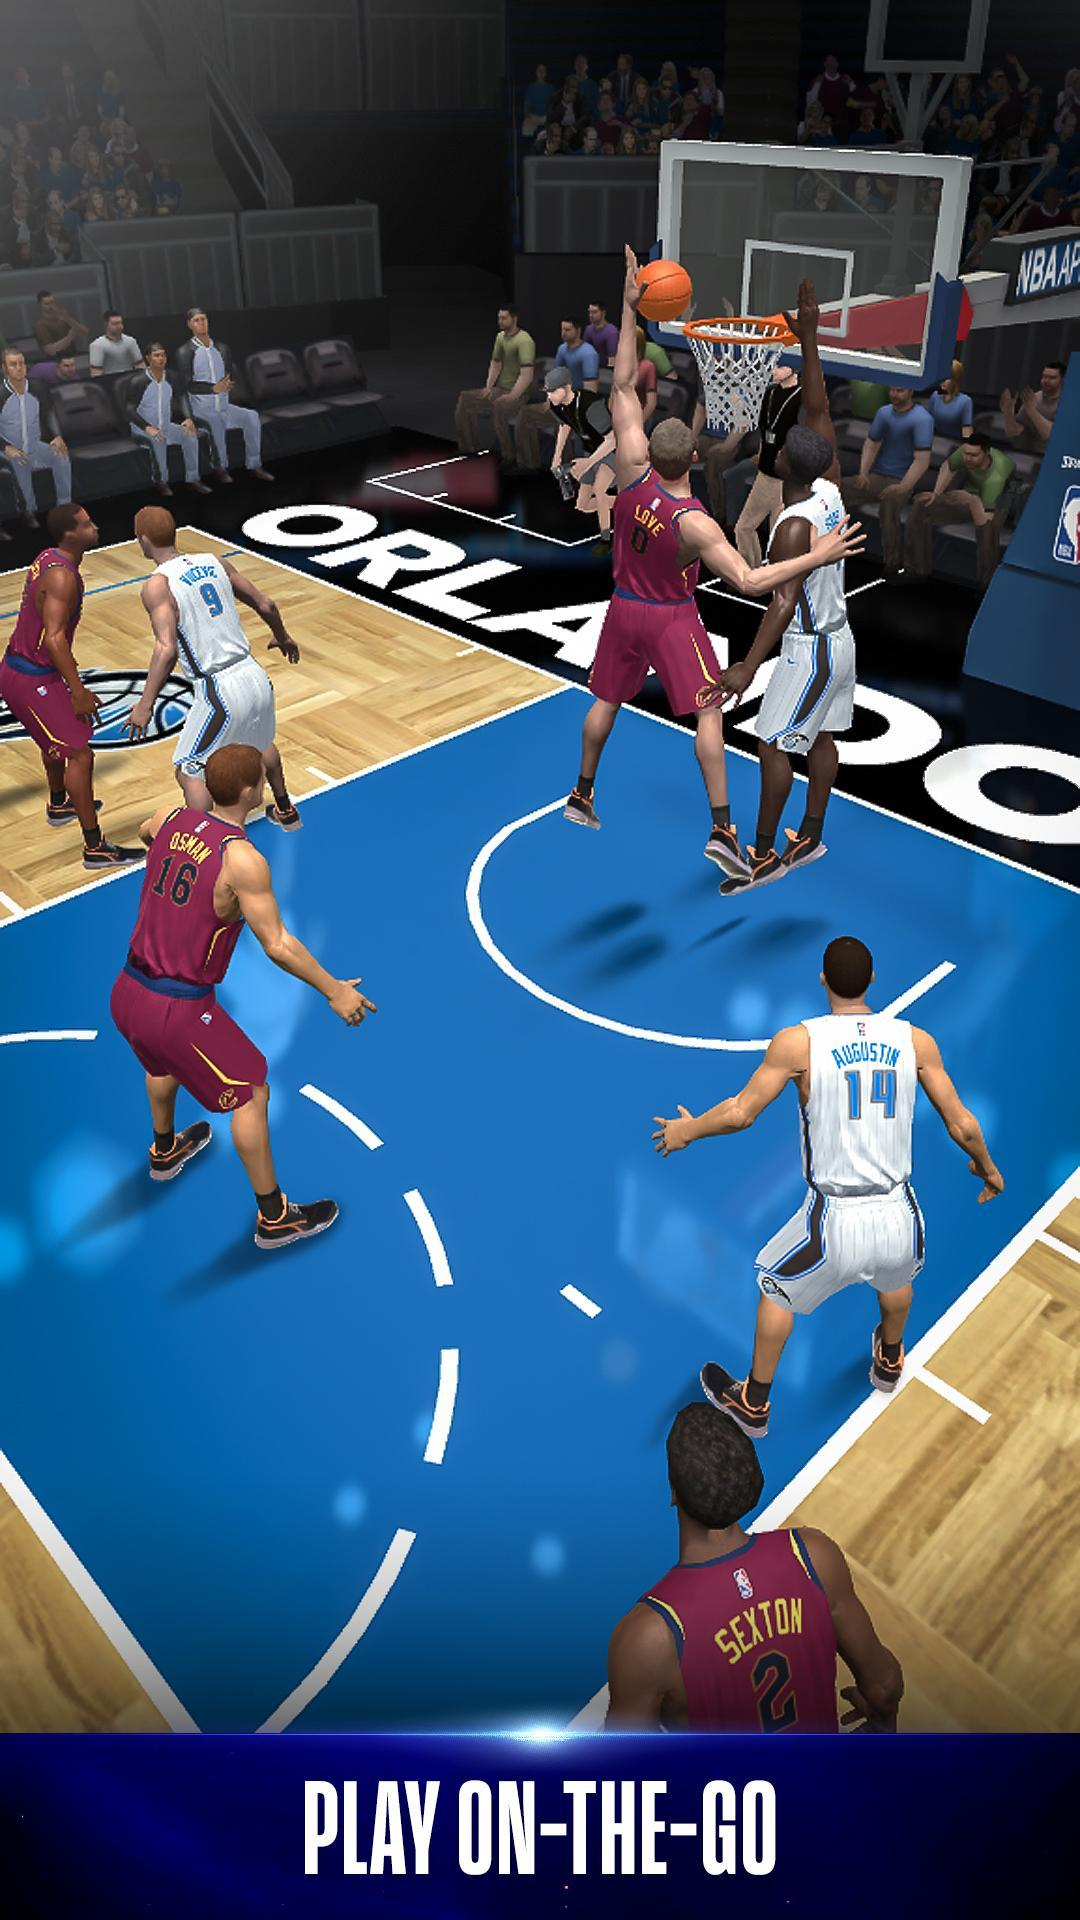 NBA NOW Mobile Basketball Game 1.5.4 Screenshot 1